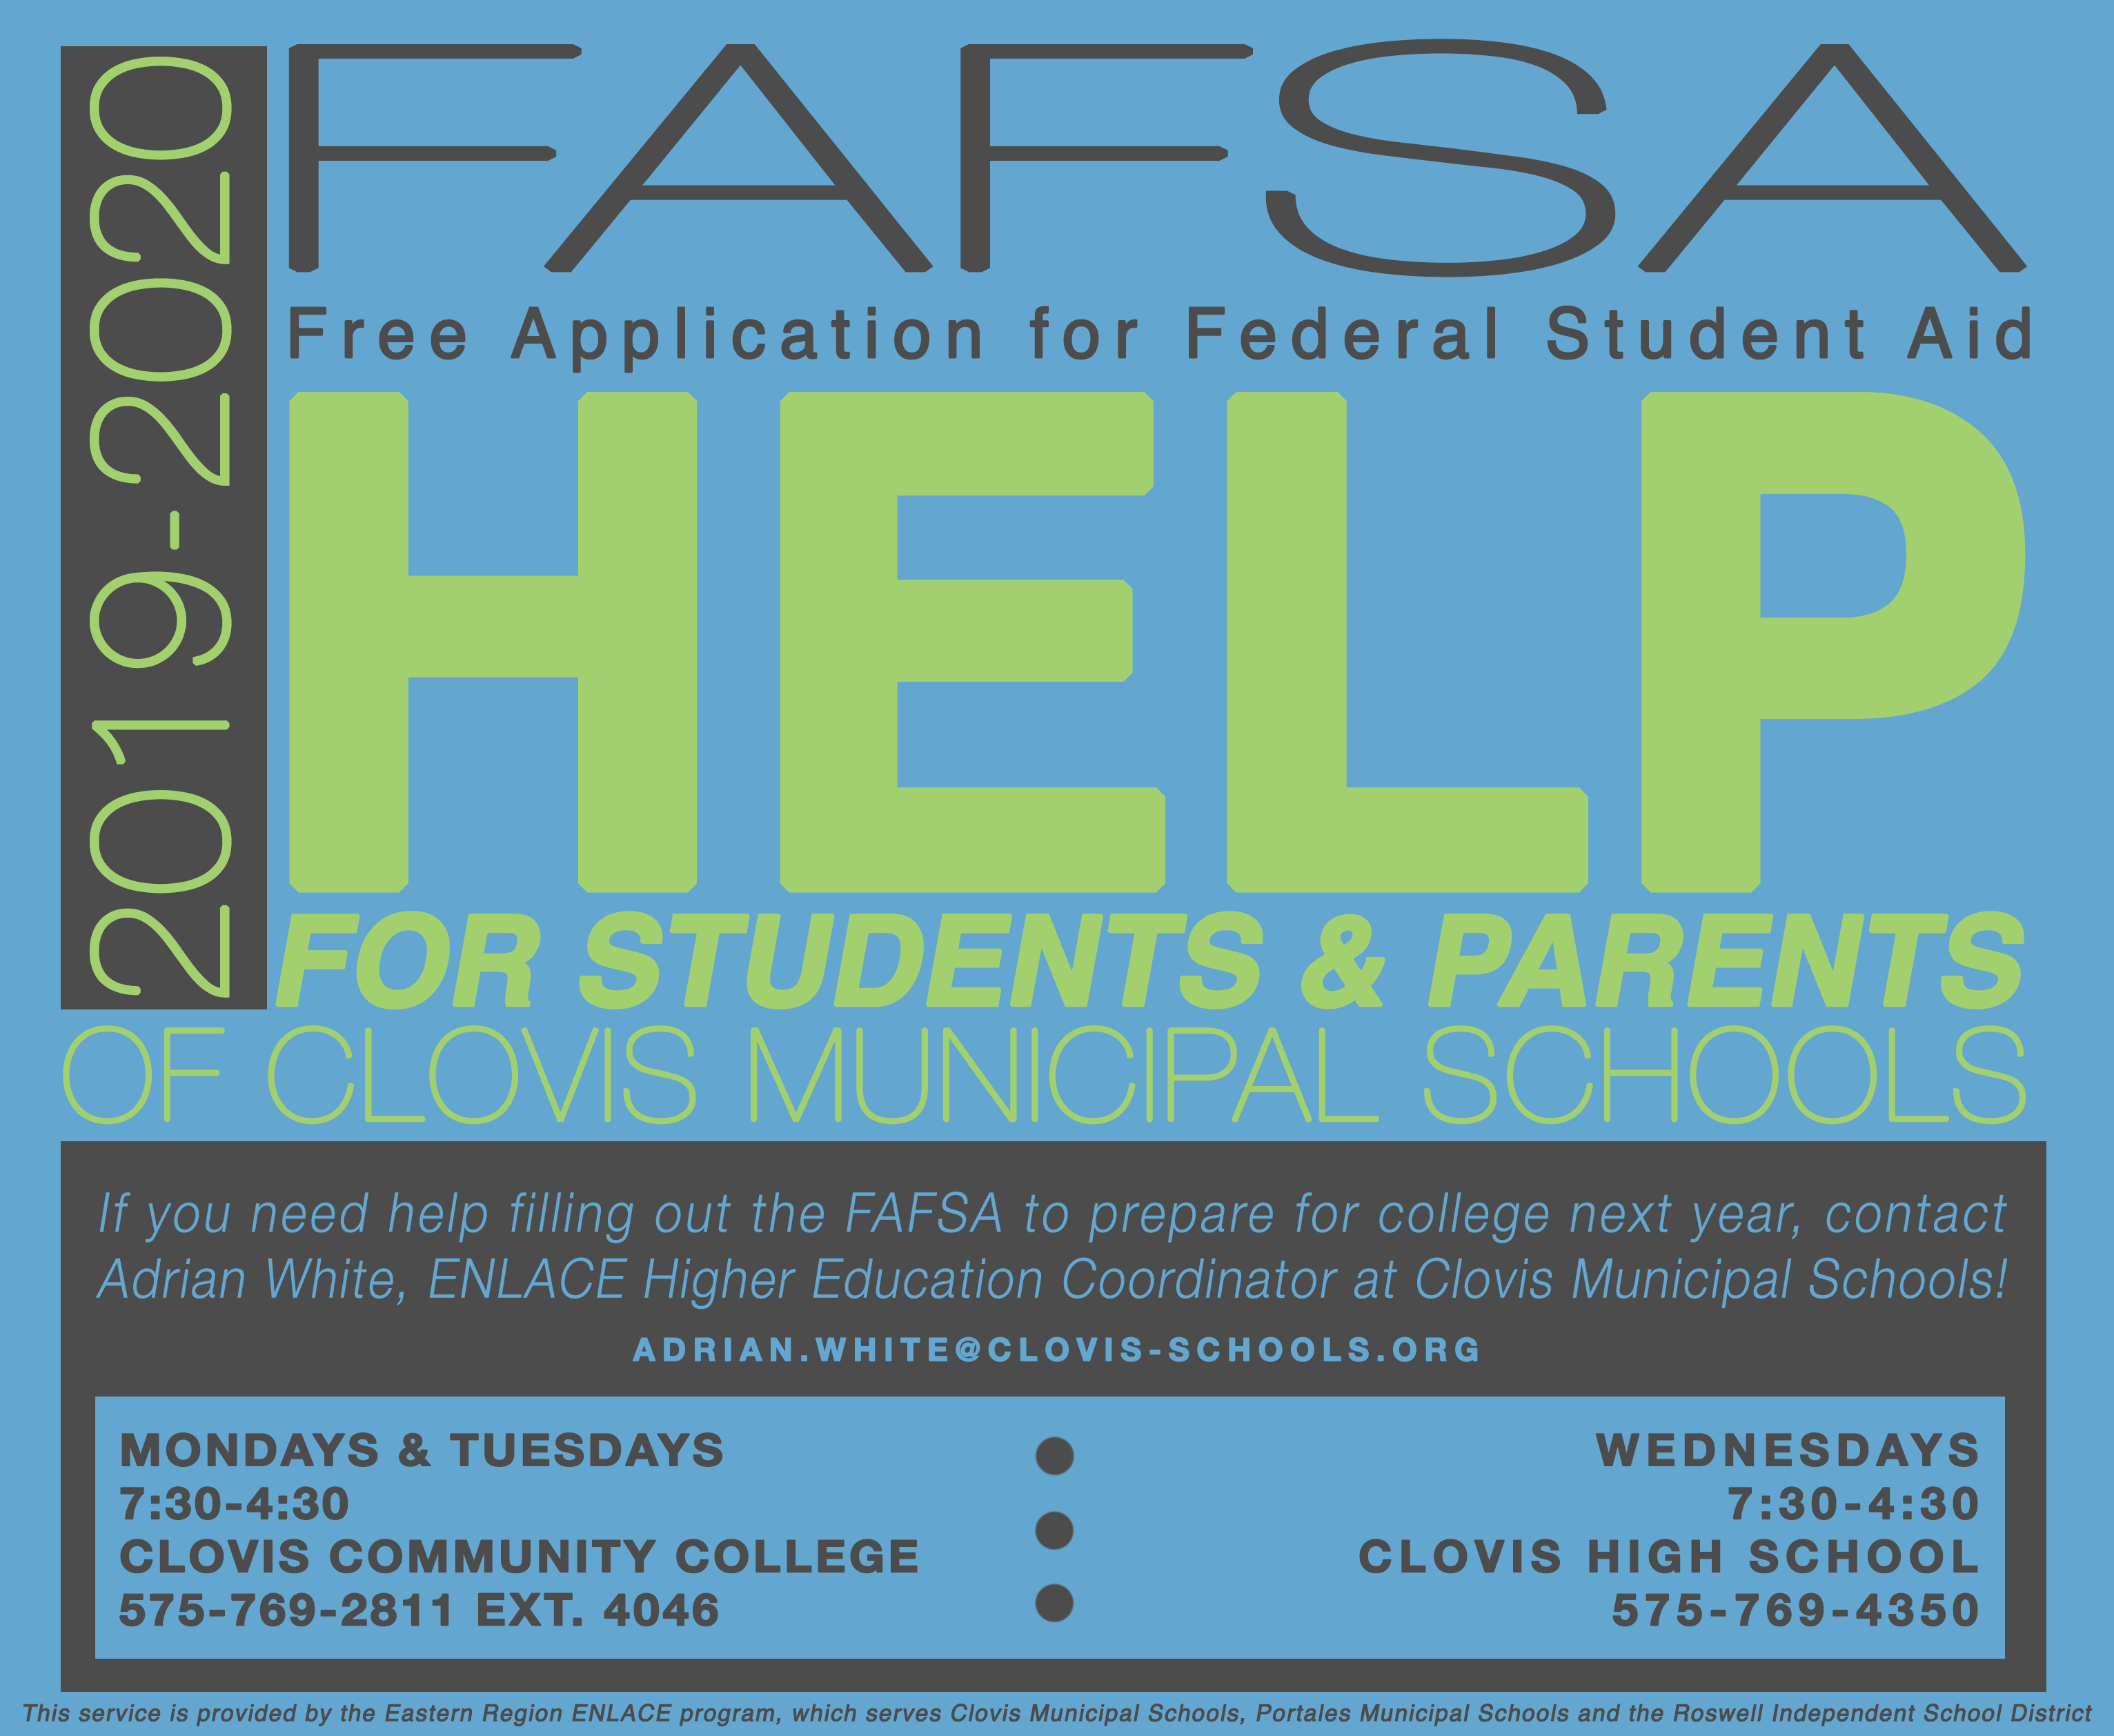 Image of text announcing help with the FAFSA